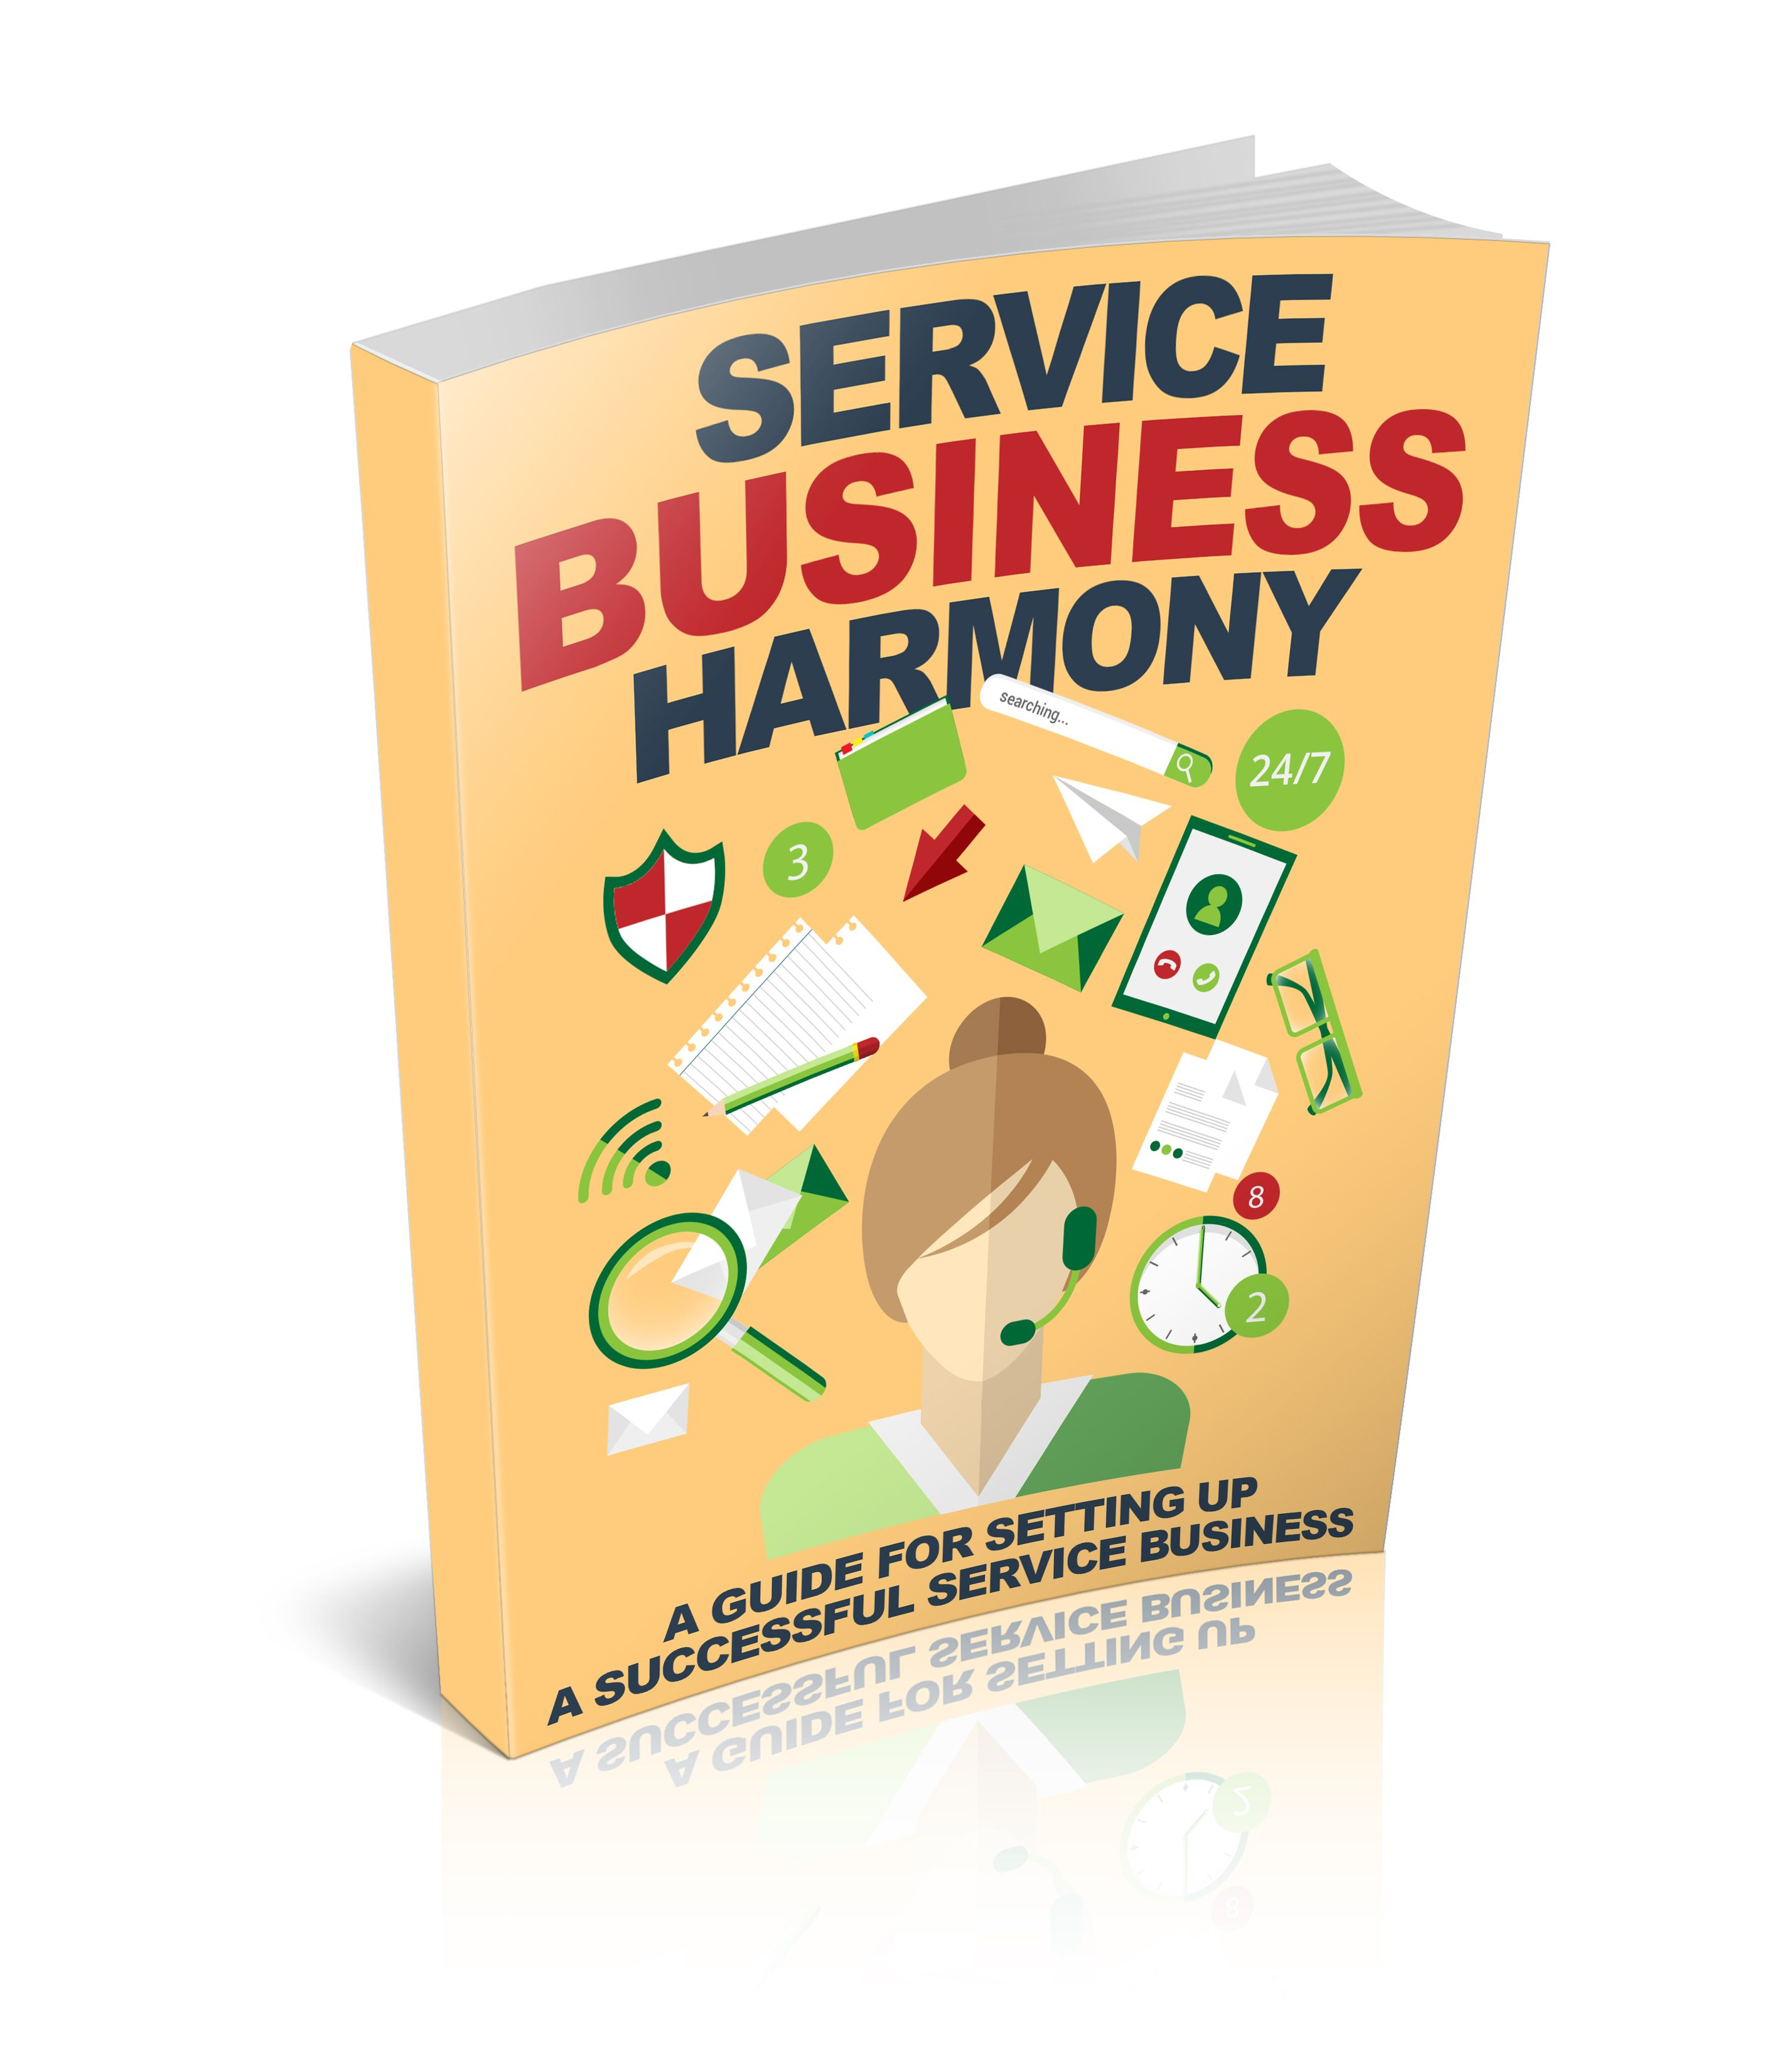 Service Business Harmony's Book Image